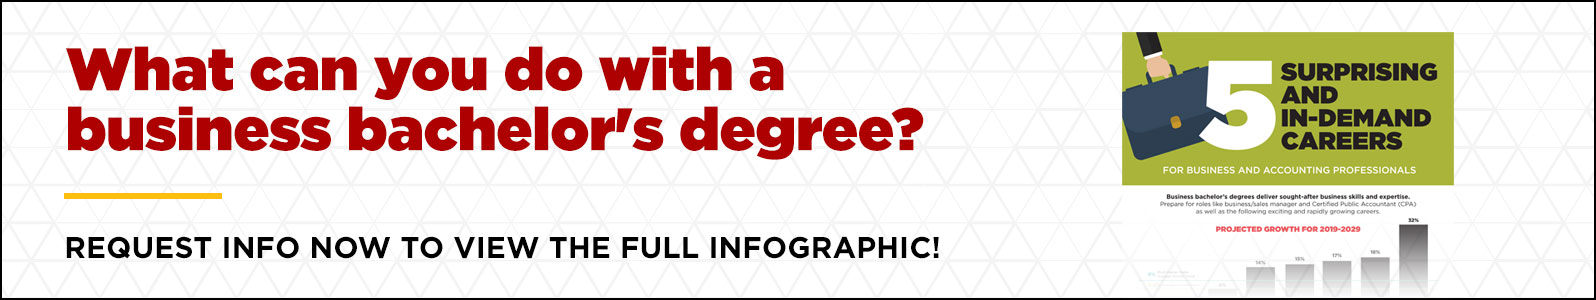 Click here to view 5 In-Demand Jobs for Business Bachelor's Degree Holders Infographic and find out what can you do with a business degree